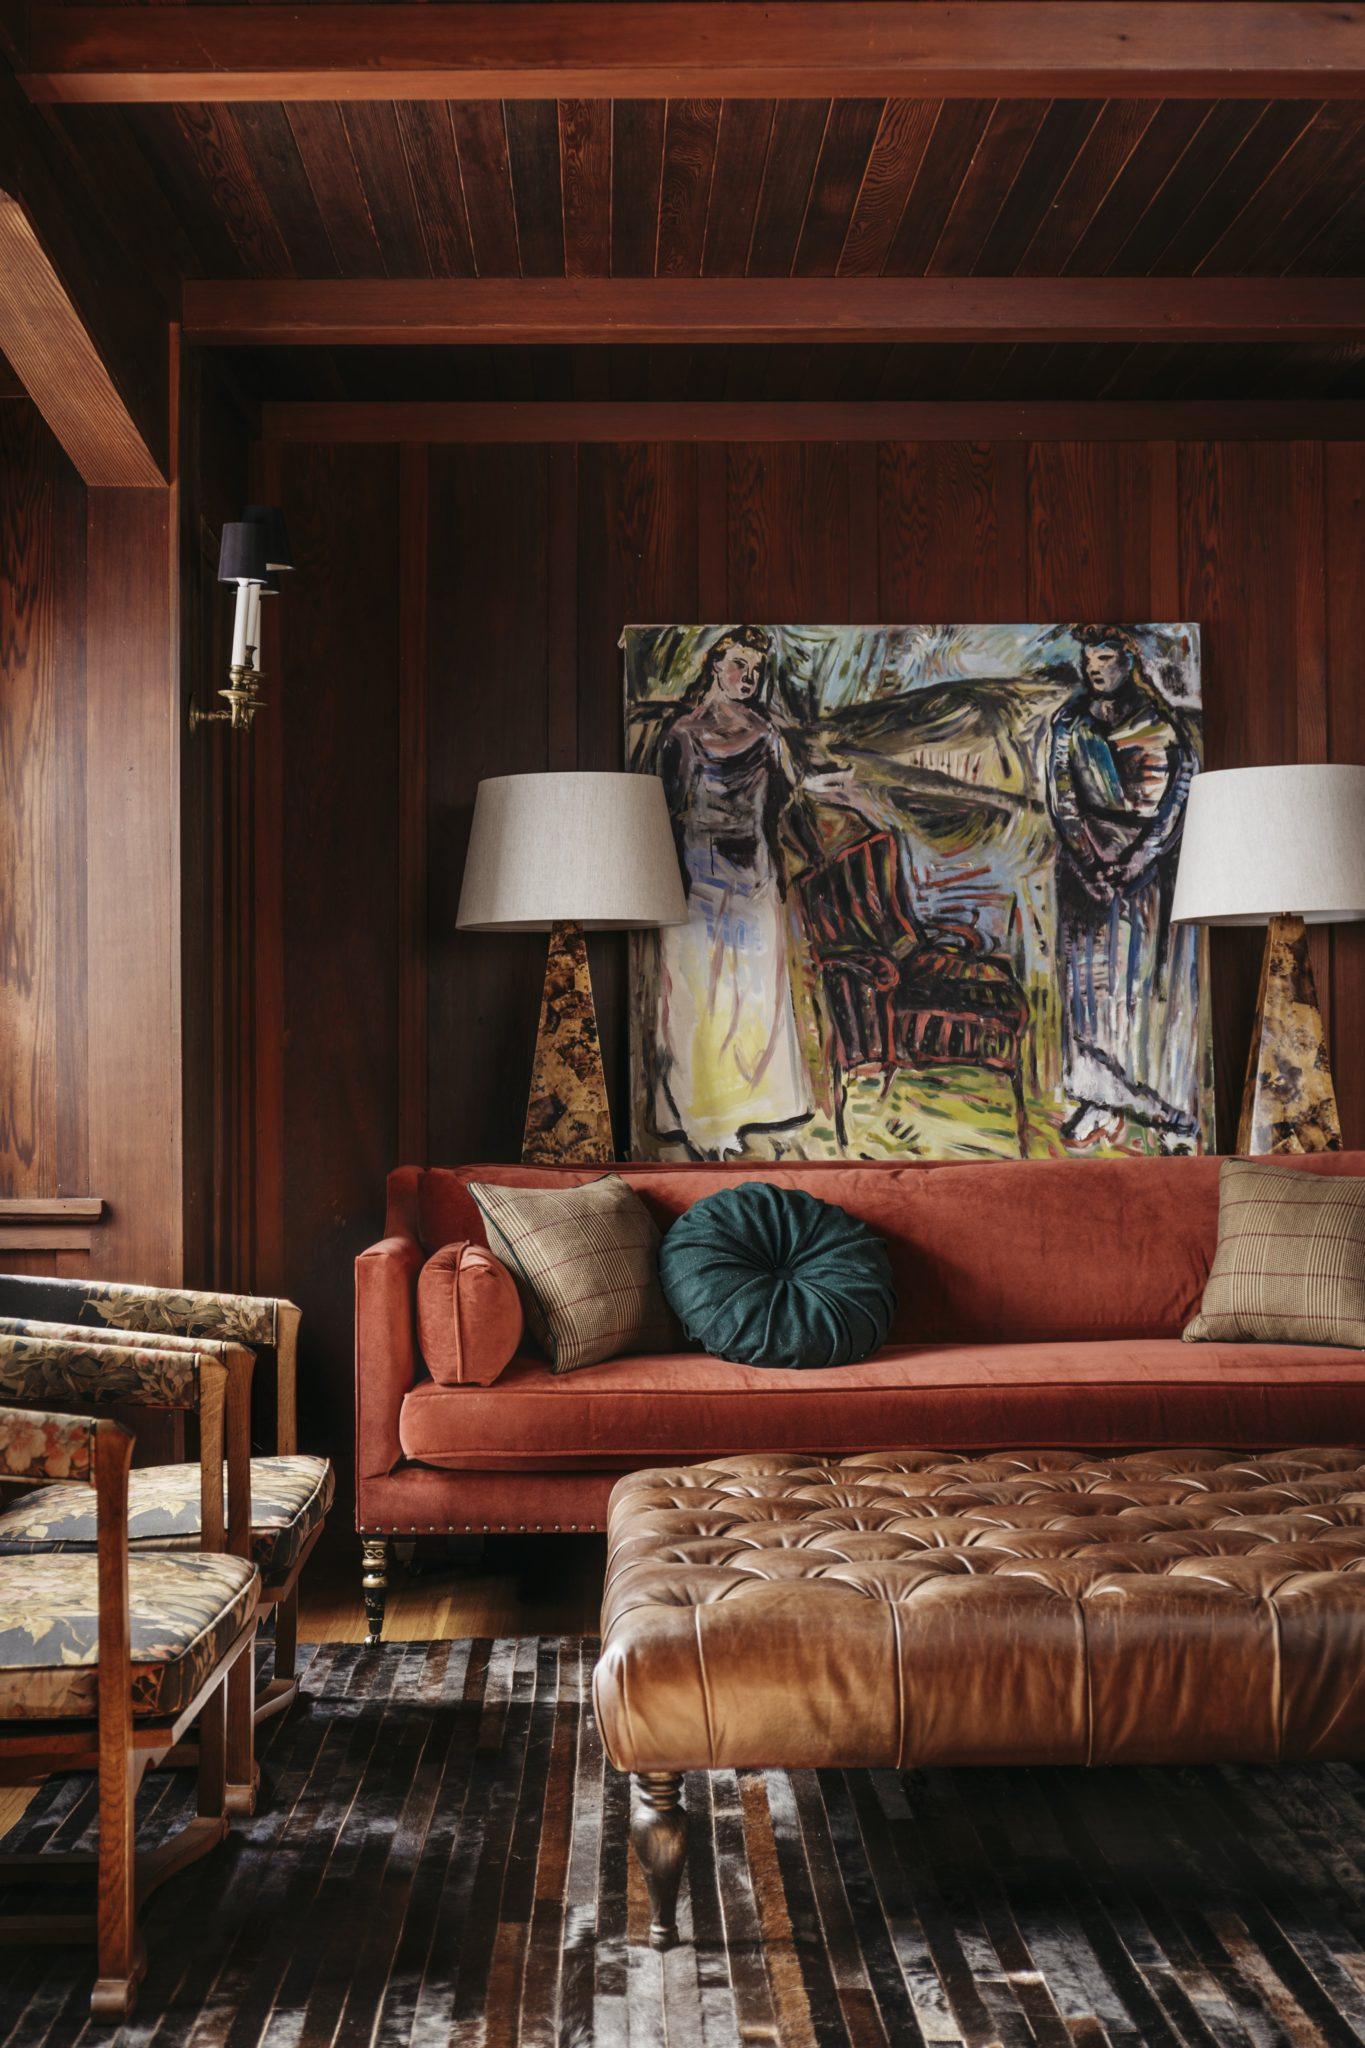 The striped cowhide rug is from Restoration Hardware. Bunny Williams Home designed the pen shell lamps; behind them, a contemporary artwork,Two Graces by Joanne Landis,gives the space an eclectic flair.